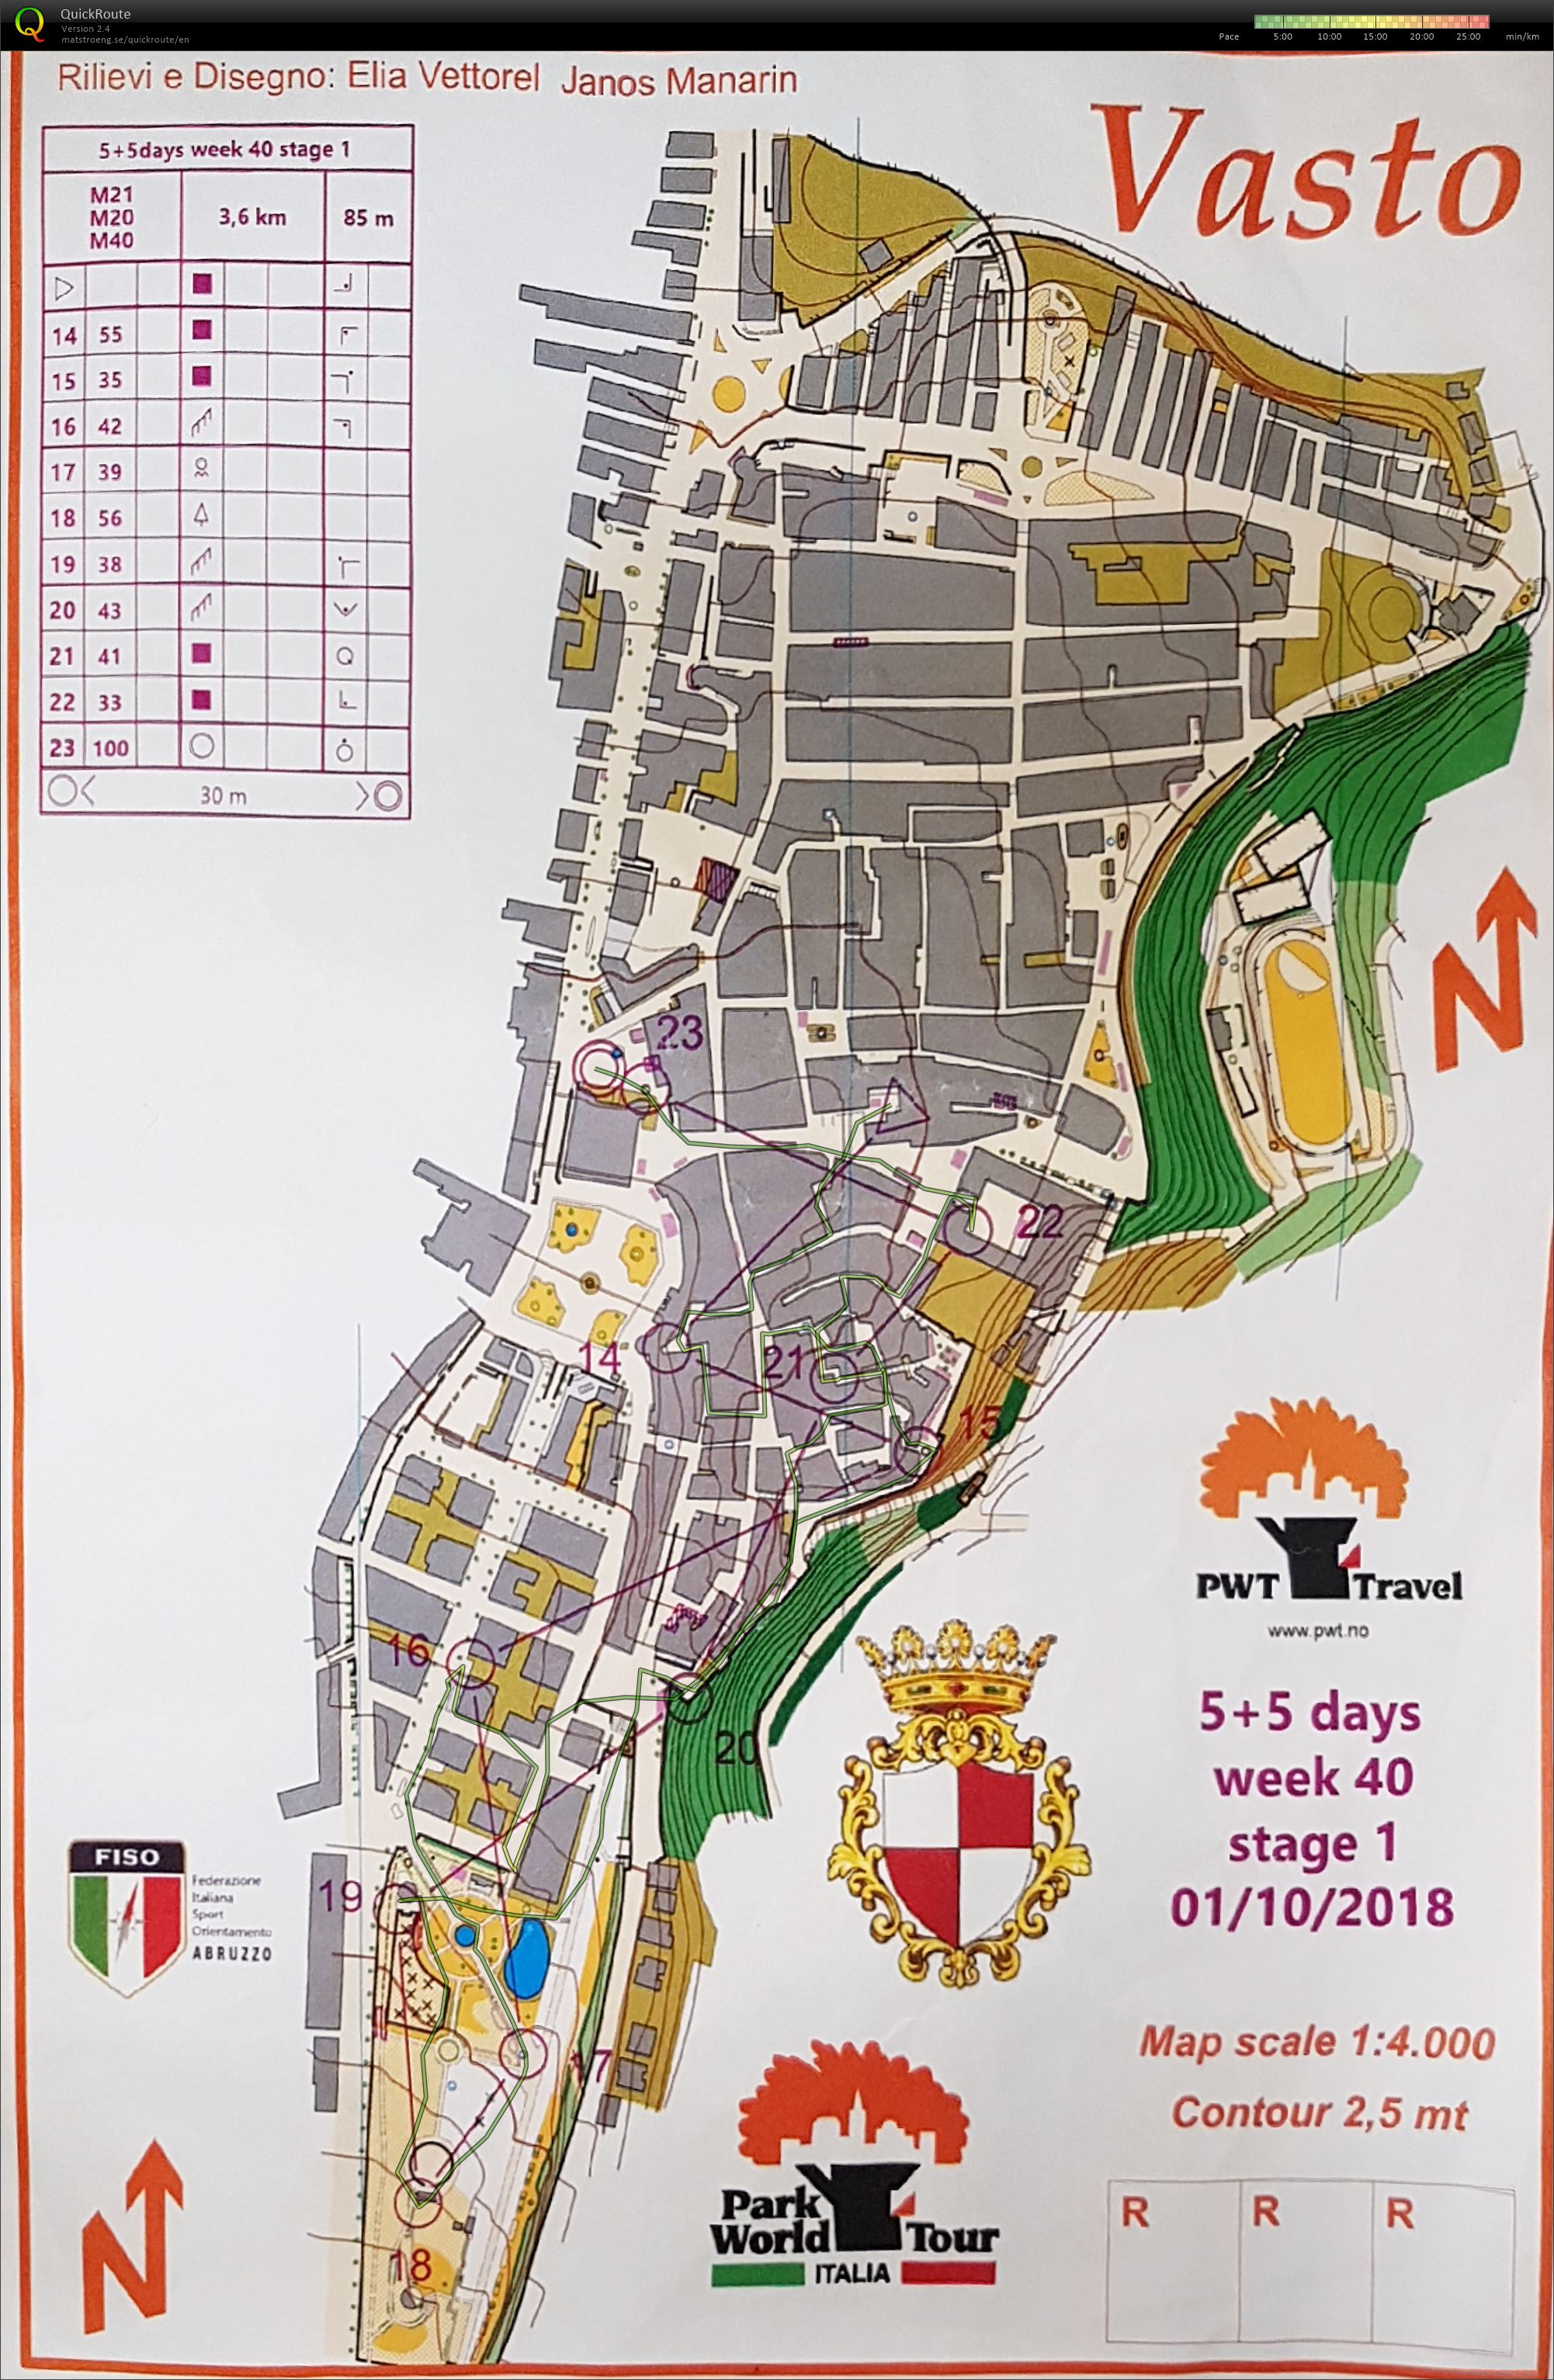 Vasto 5 days stage 1 part 2 (01.10.2018)